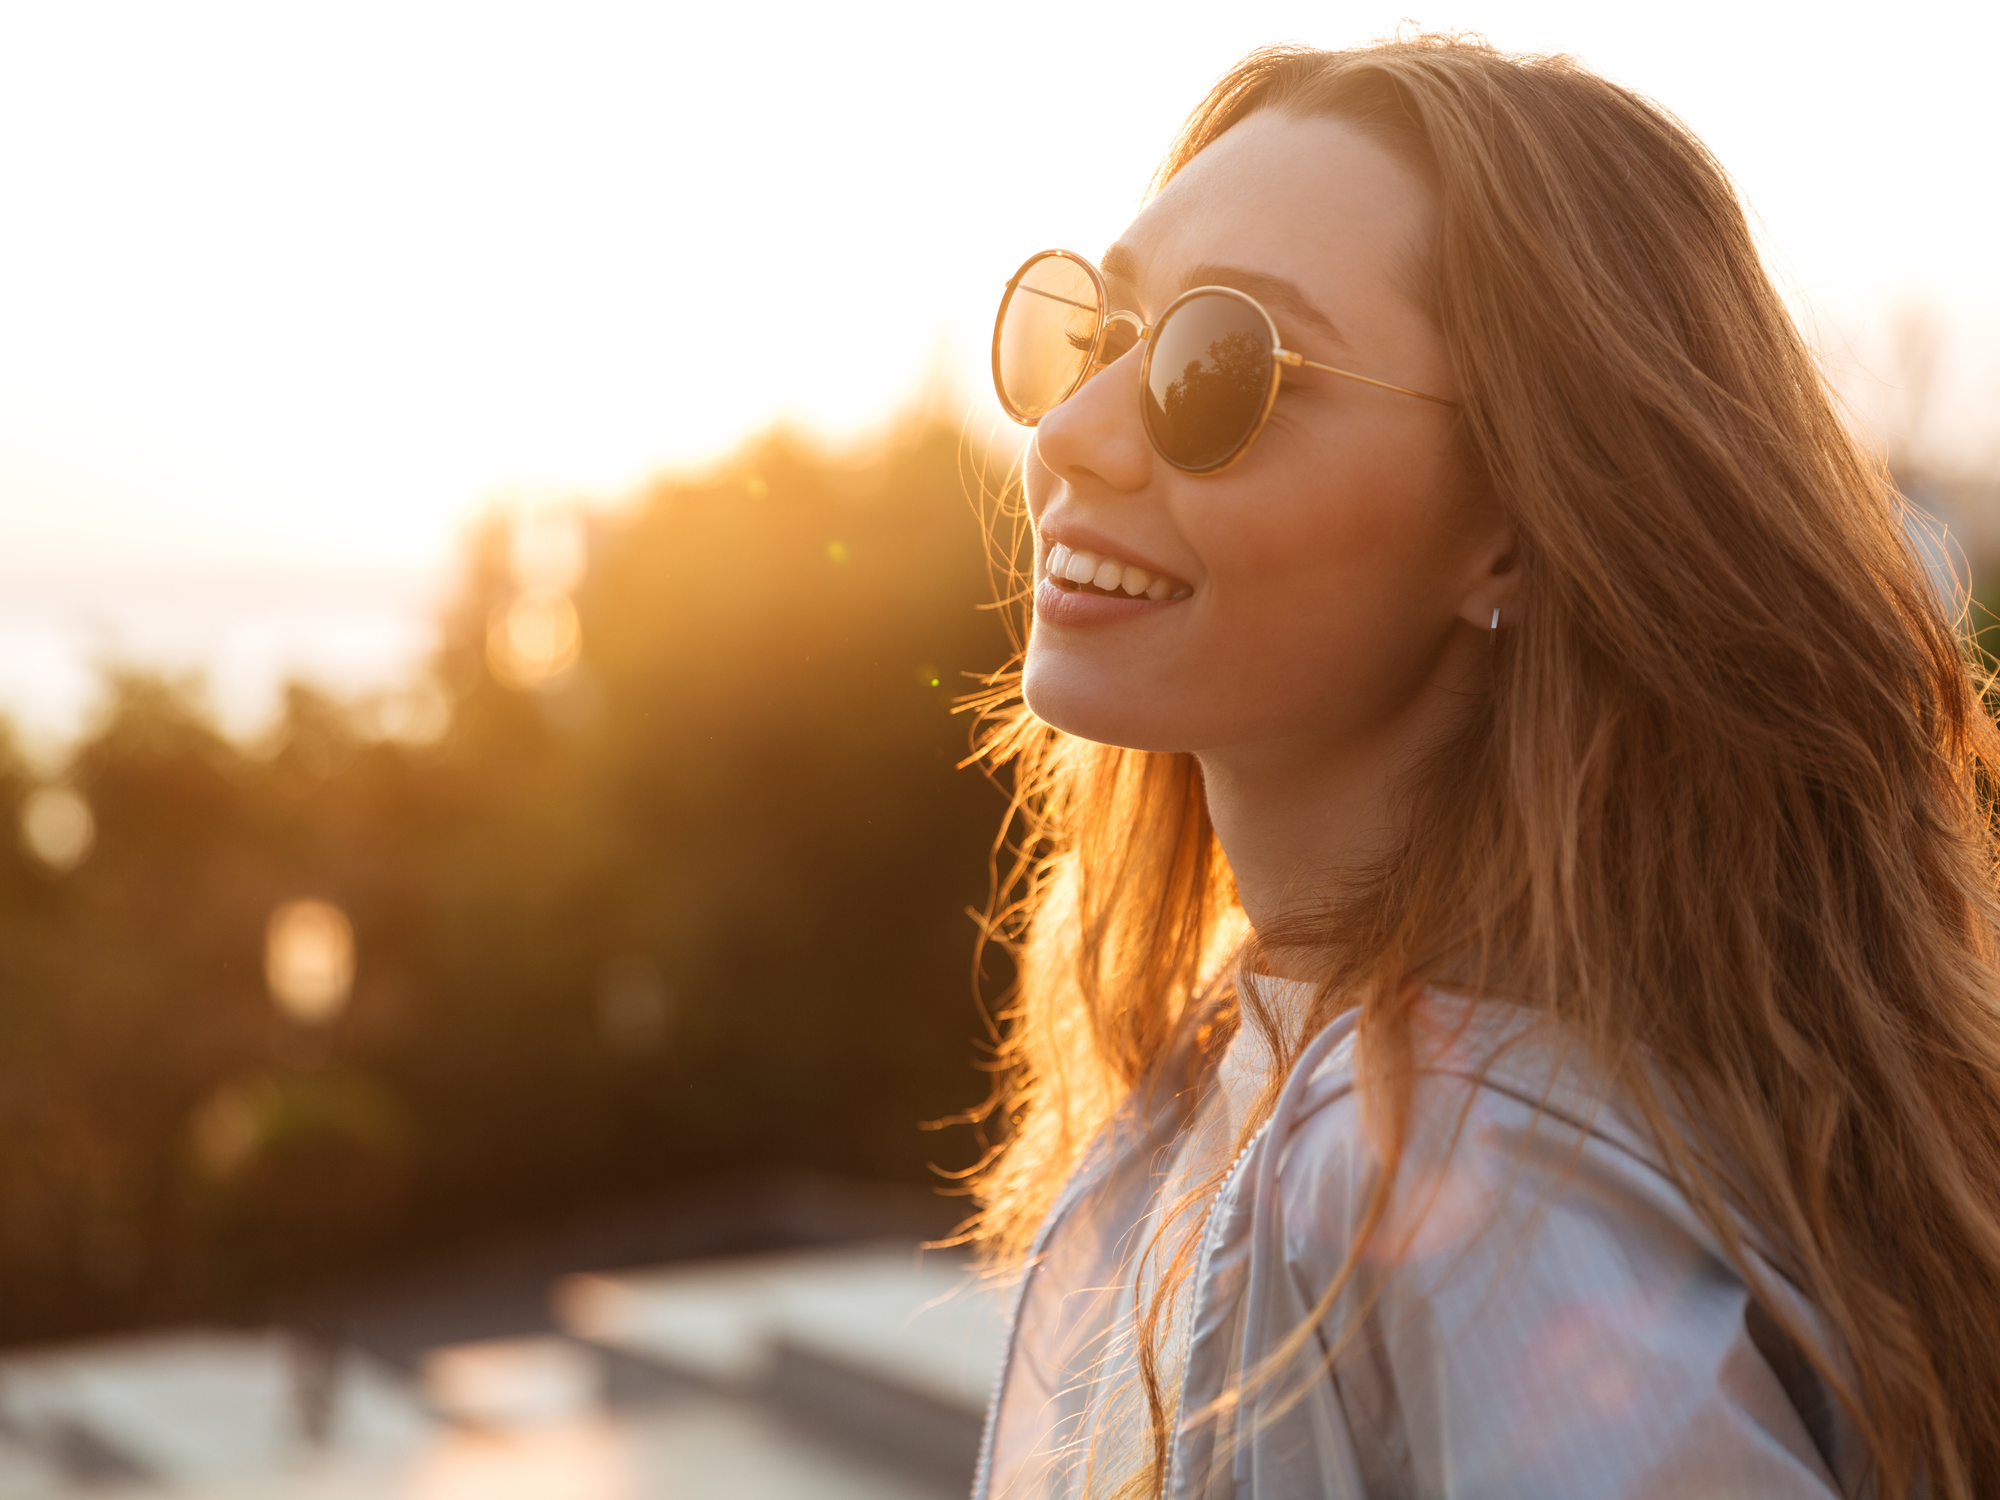 Best Eye Care Practices to Protect From UV